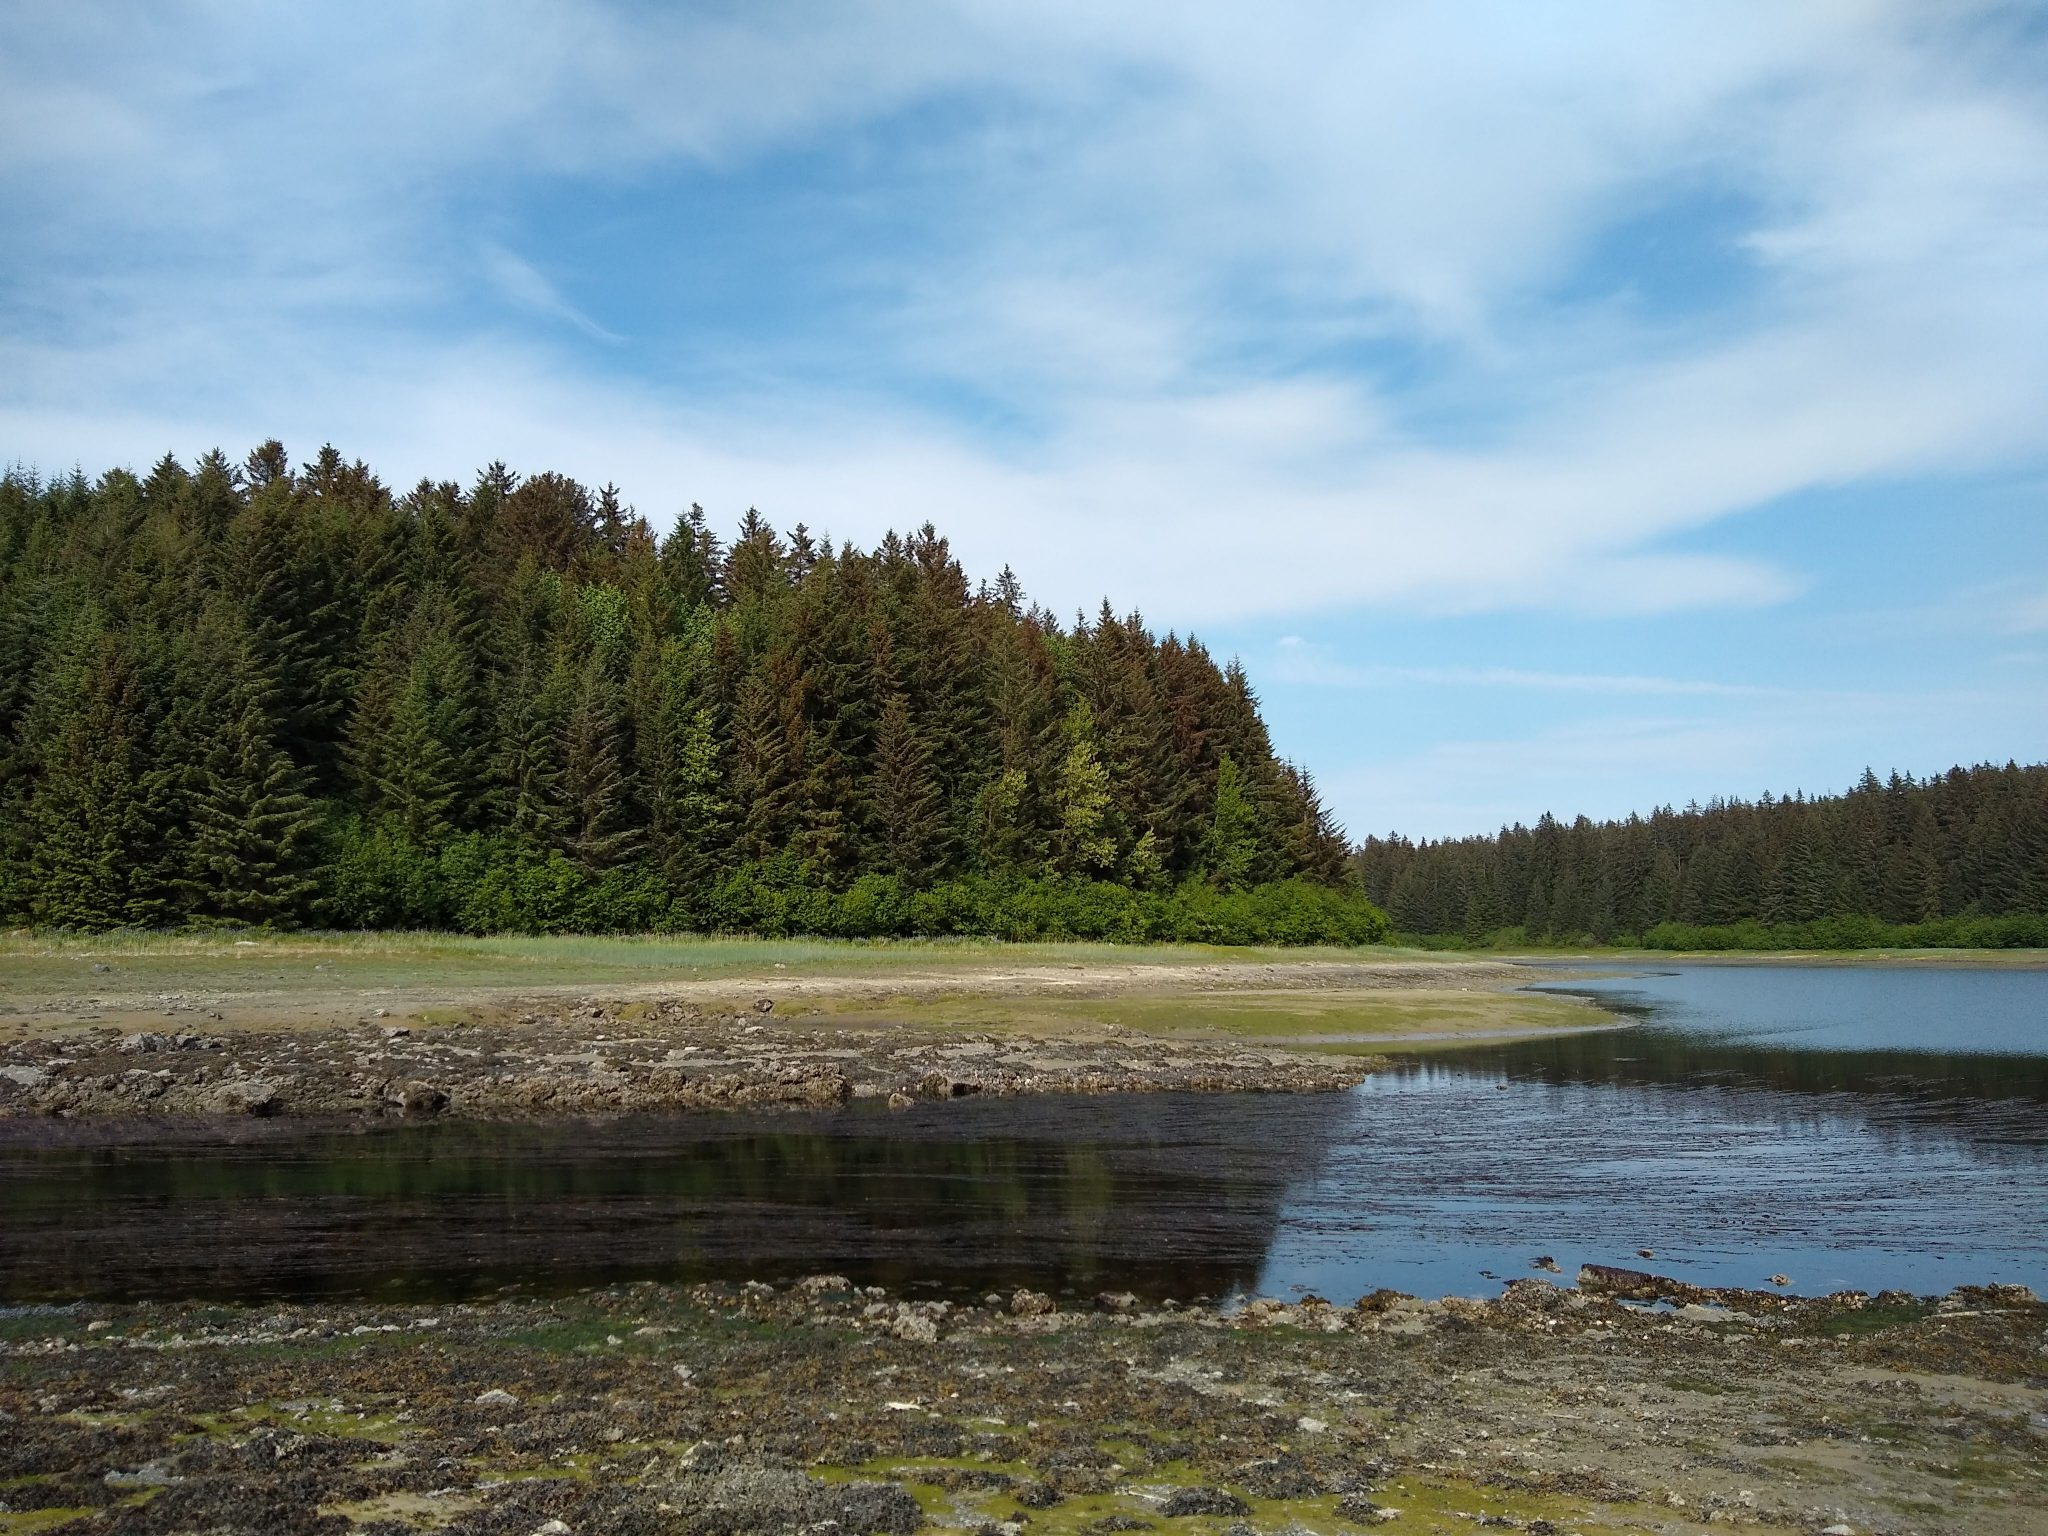 Green evergreen trees on the shore and a river flowing into the sea creating an estuary. The tide is low, there are mudflats and rocks exposed.